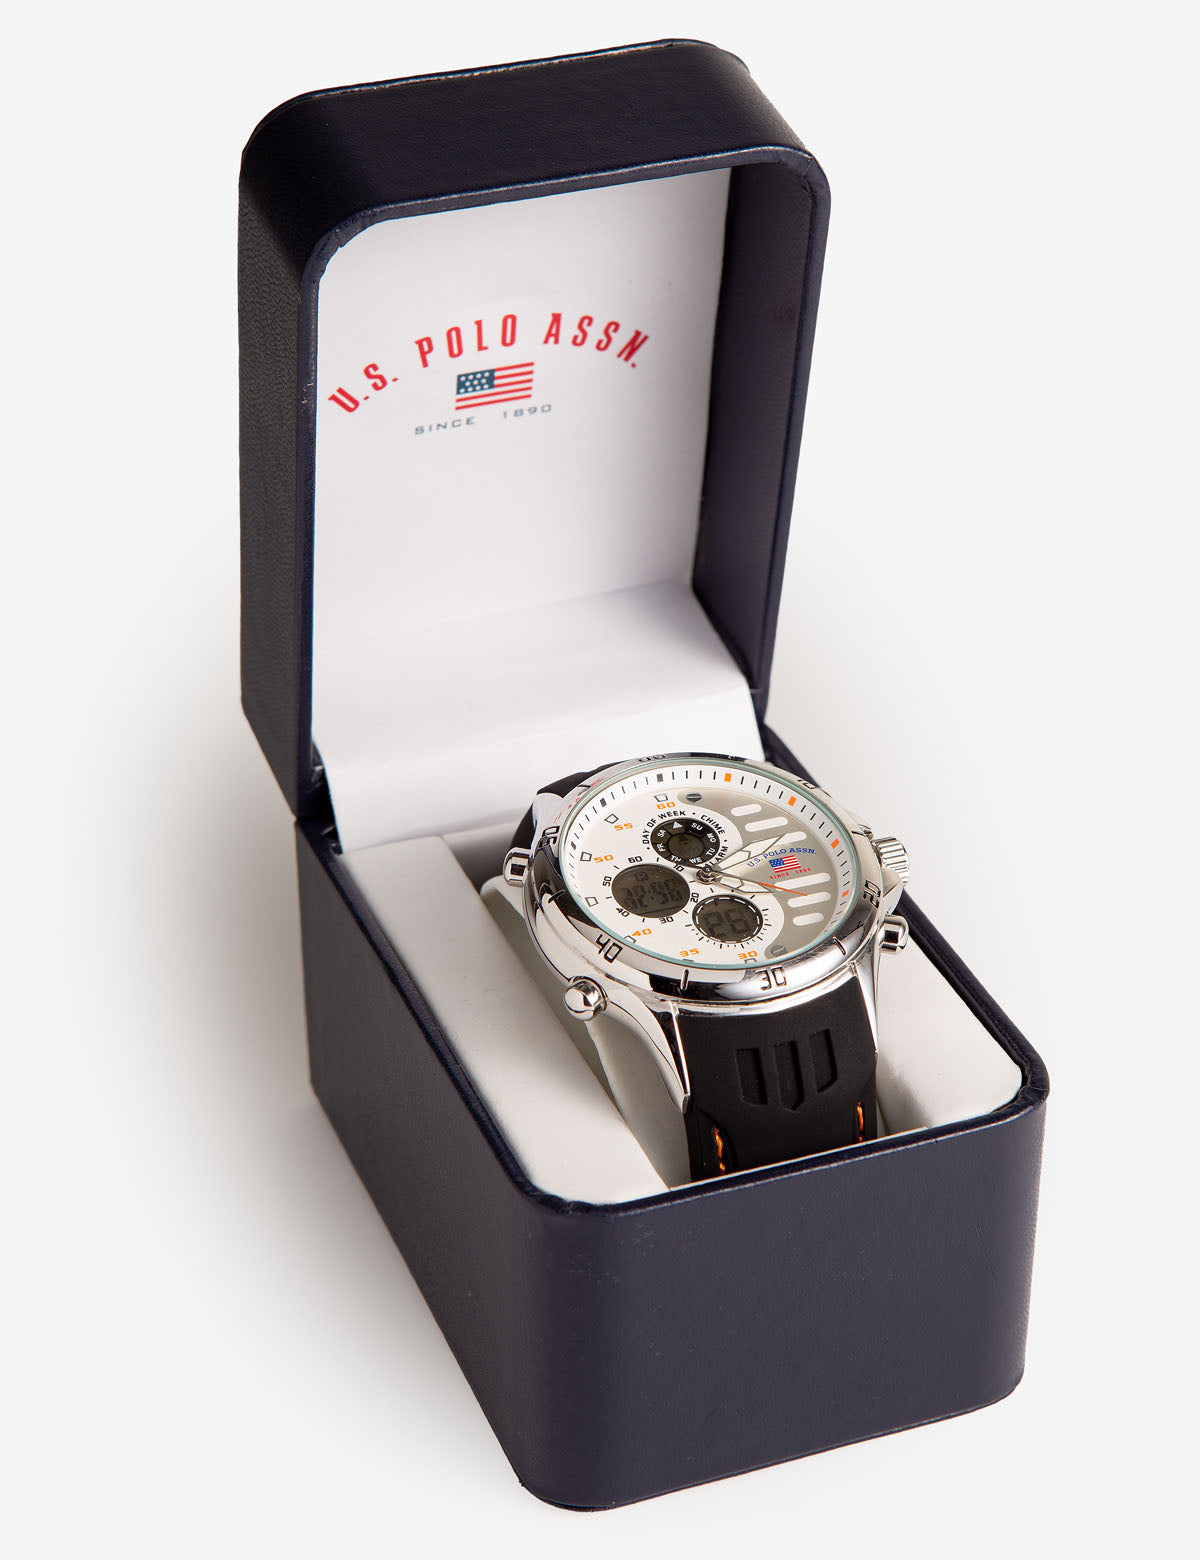 White Ana-Digi Dial Watch with Black Strap - U.S. Polo Assn.